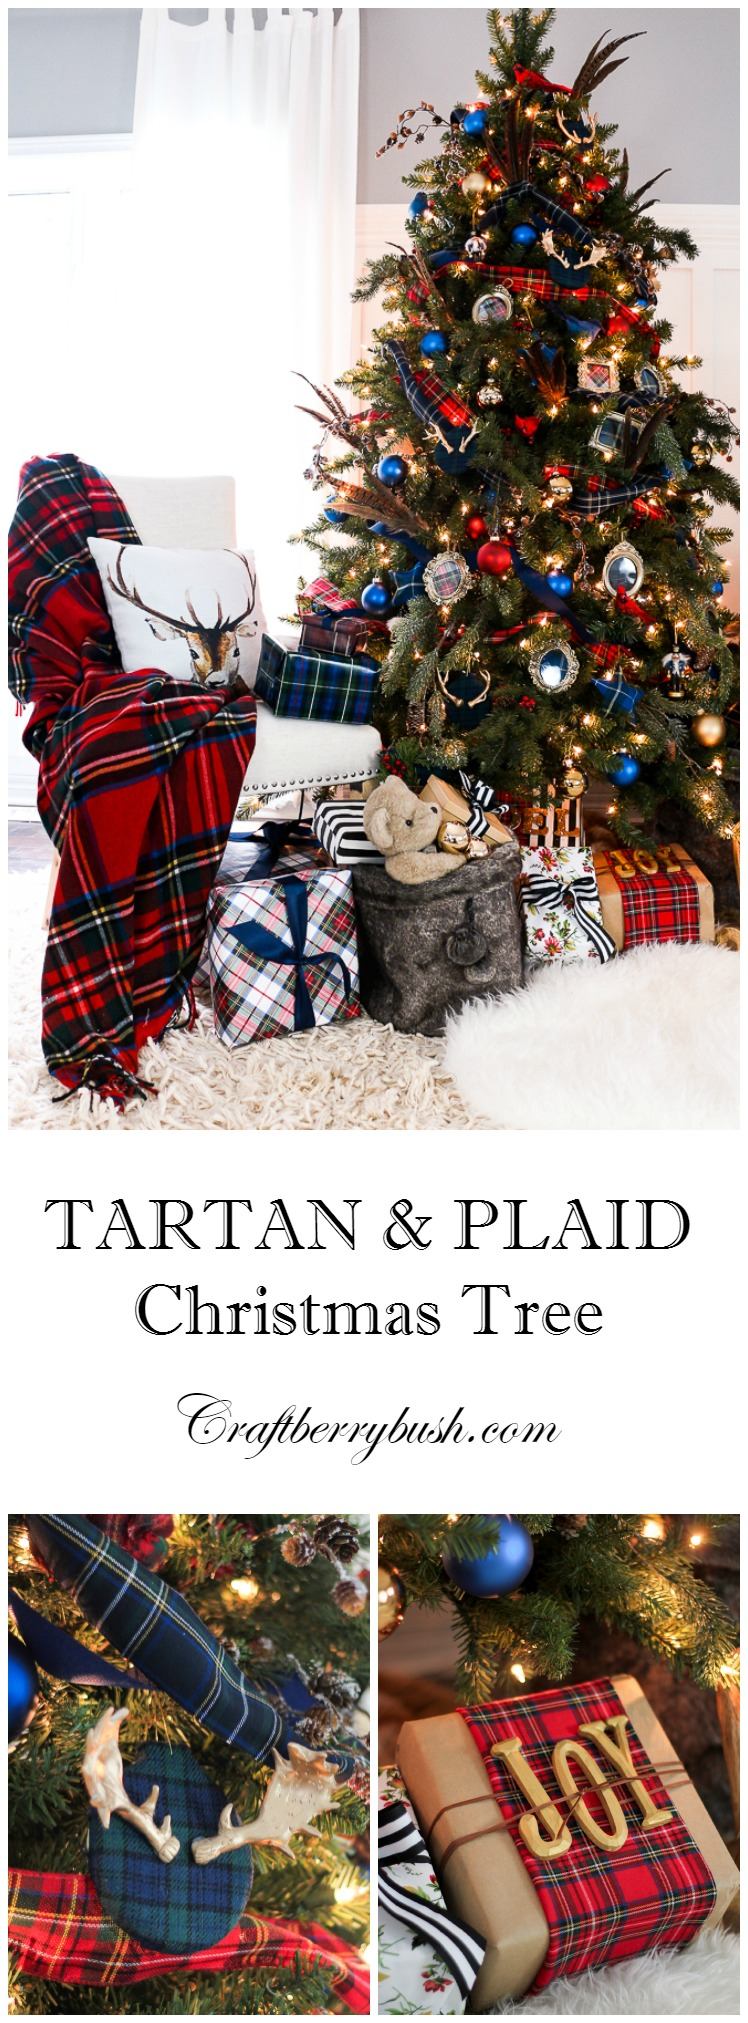 tartanandplaichristmastreecraftberrybush - Plaid Christmas Tree Decorations